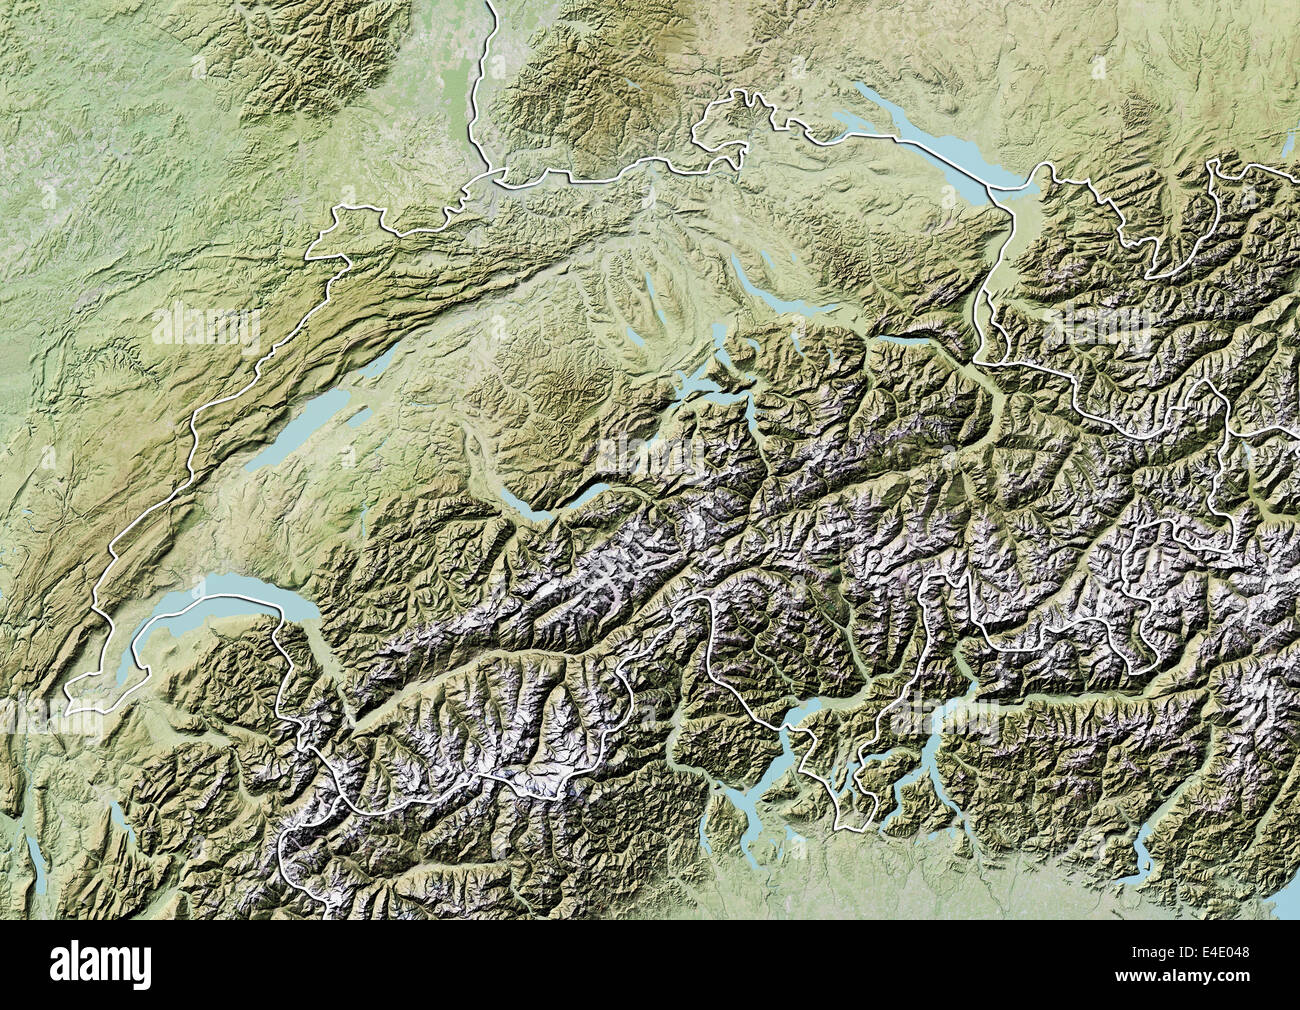 Alps Aerial Map Stock Photos & Alps Aerial Map Stock Images - Alamy